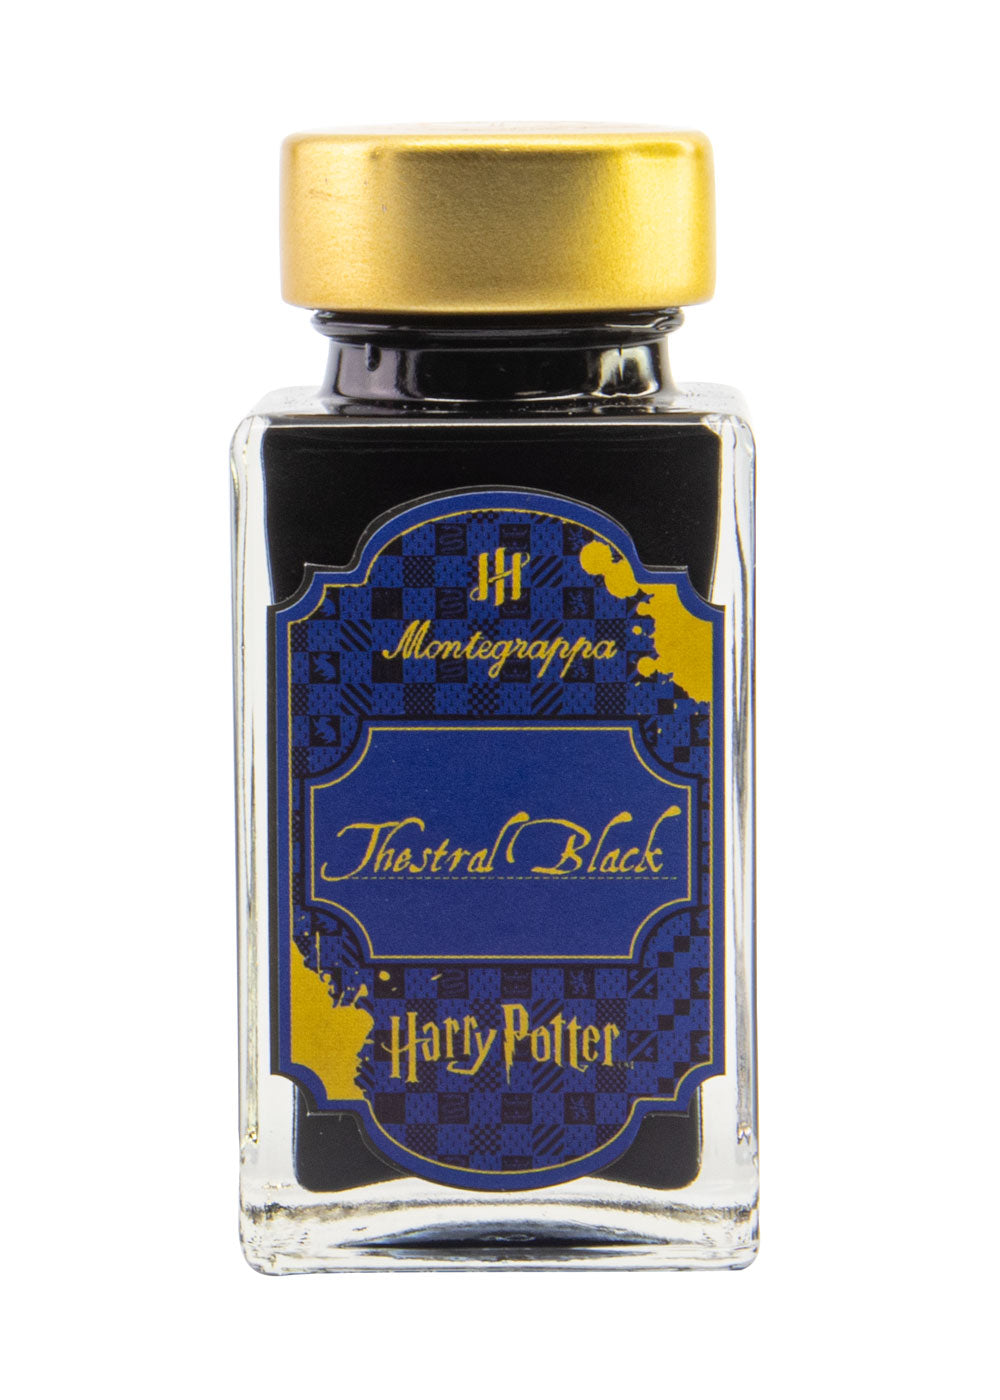 Montegrappa Harry Potter Limited Edition Ink Thestral Black